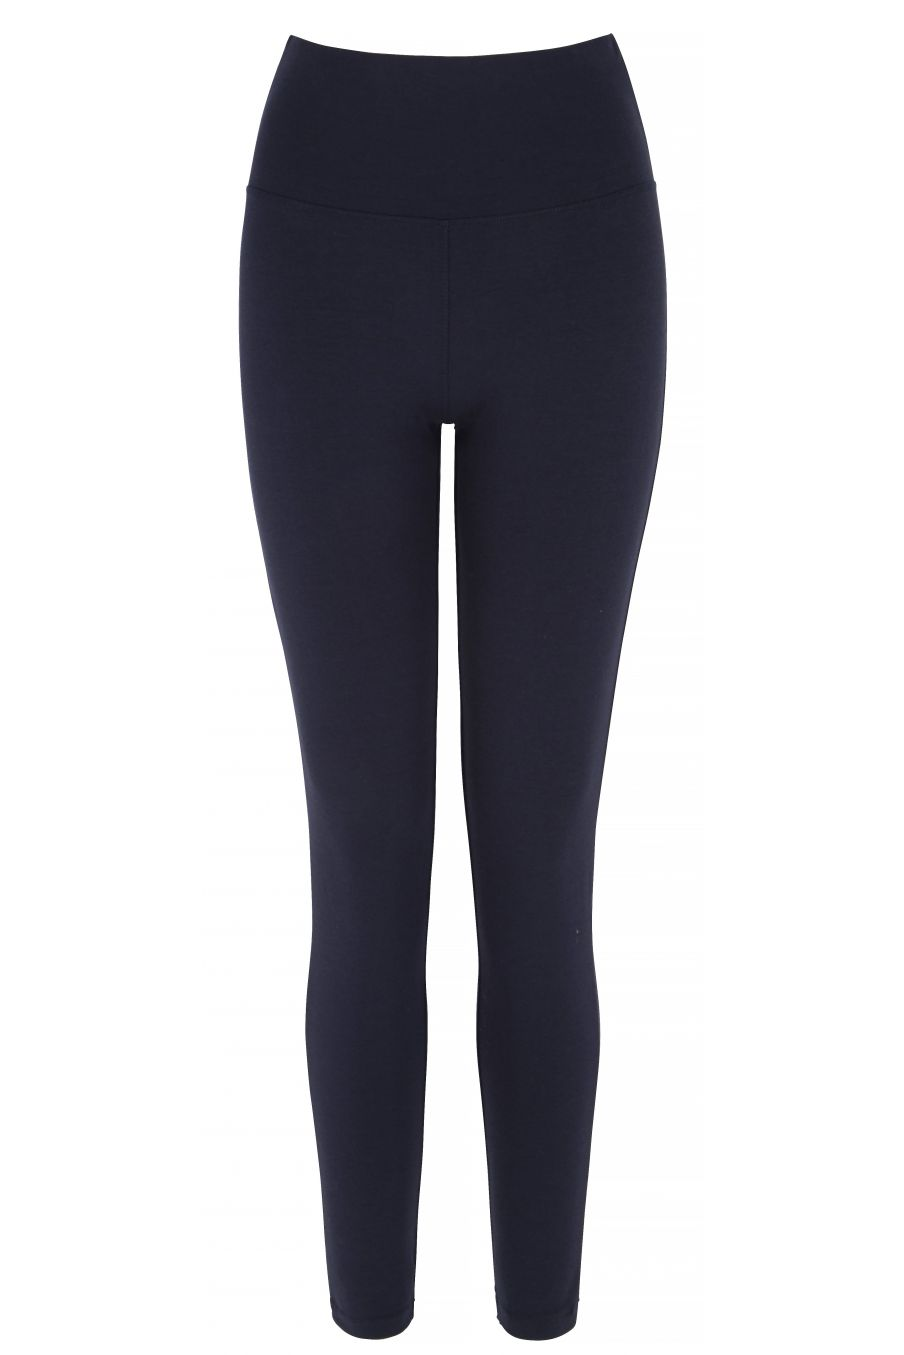 Flow With It Leggings, maternity wear for yoga